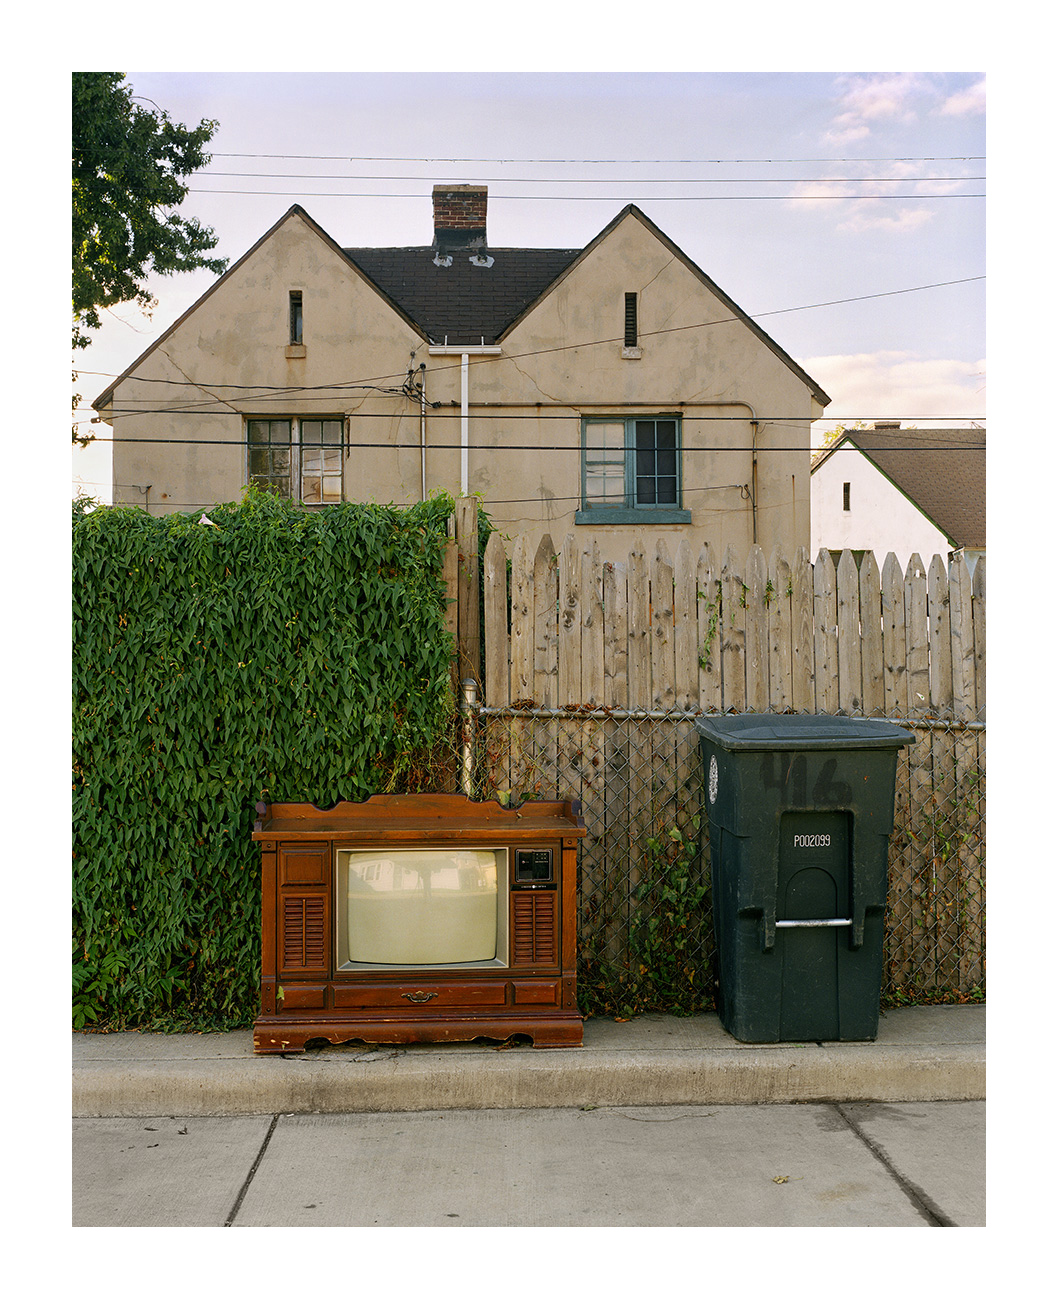 Broken TV, Marktown, East Chicago, IN 2003